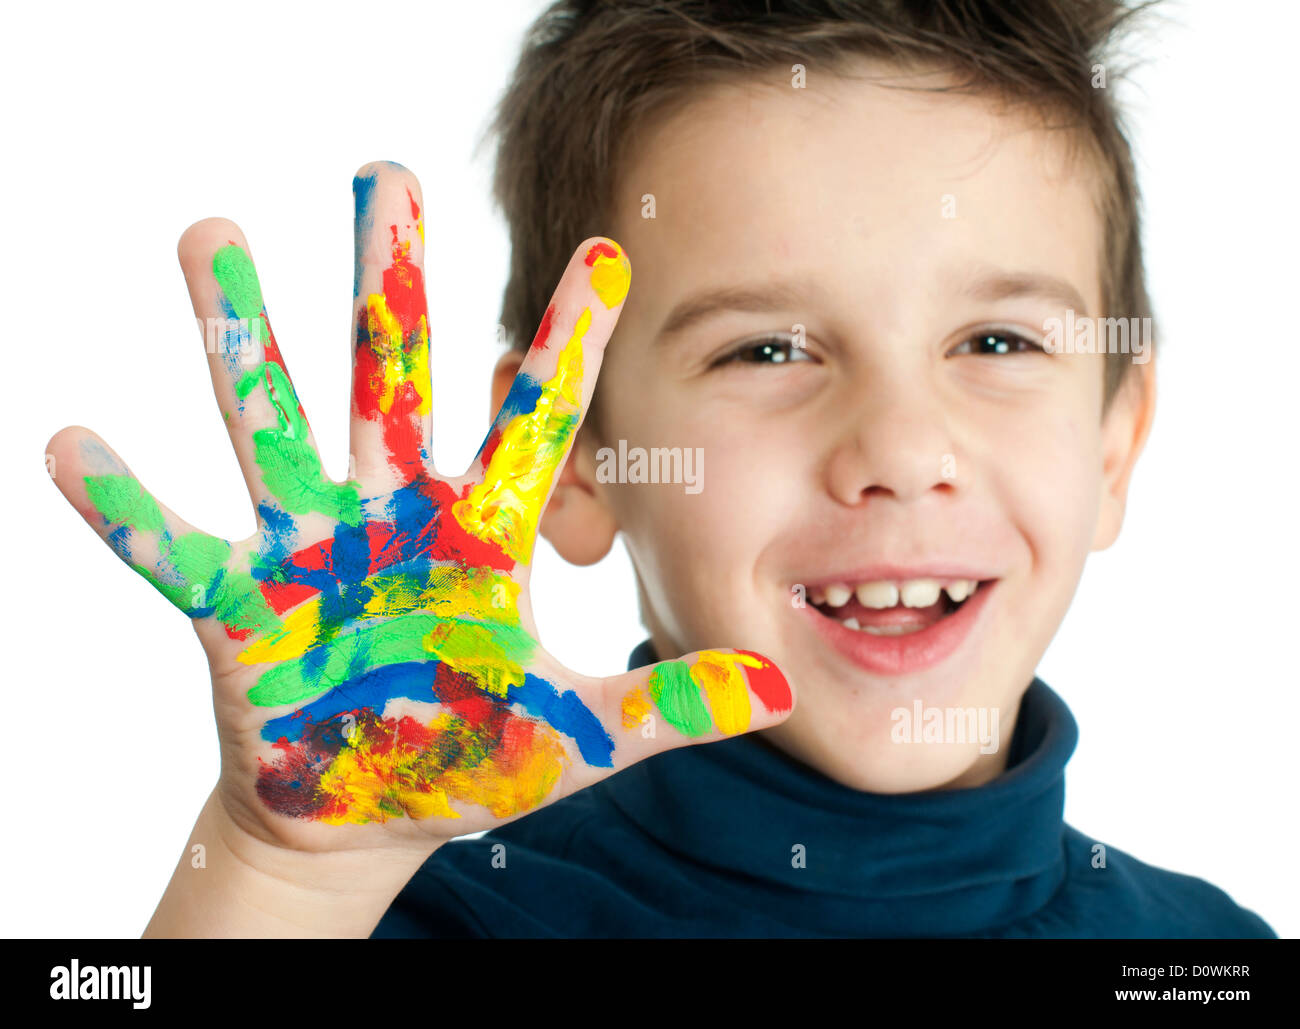 Boy hands painted with colorful paint. White islated smiling child - Stock Image